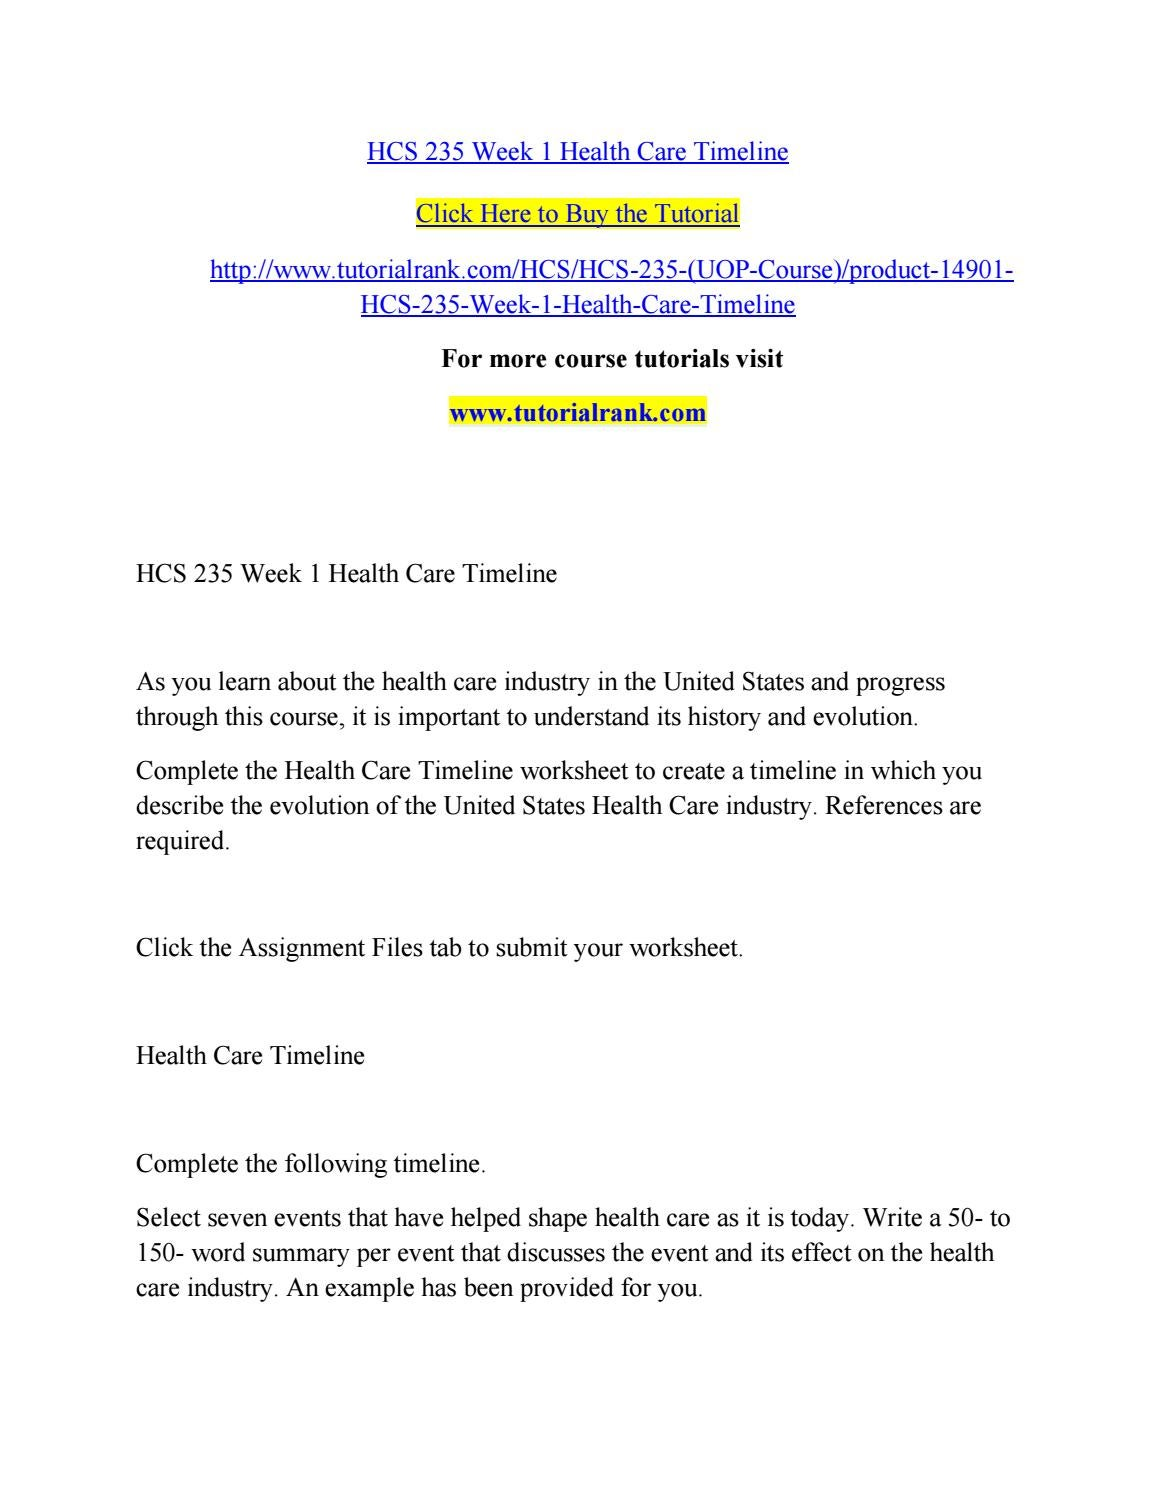 HCS 531 WEEK 4 Health Care Careers Diagram and Summary